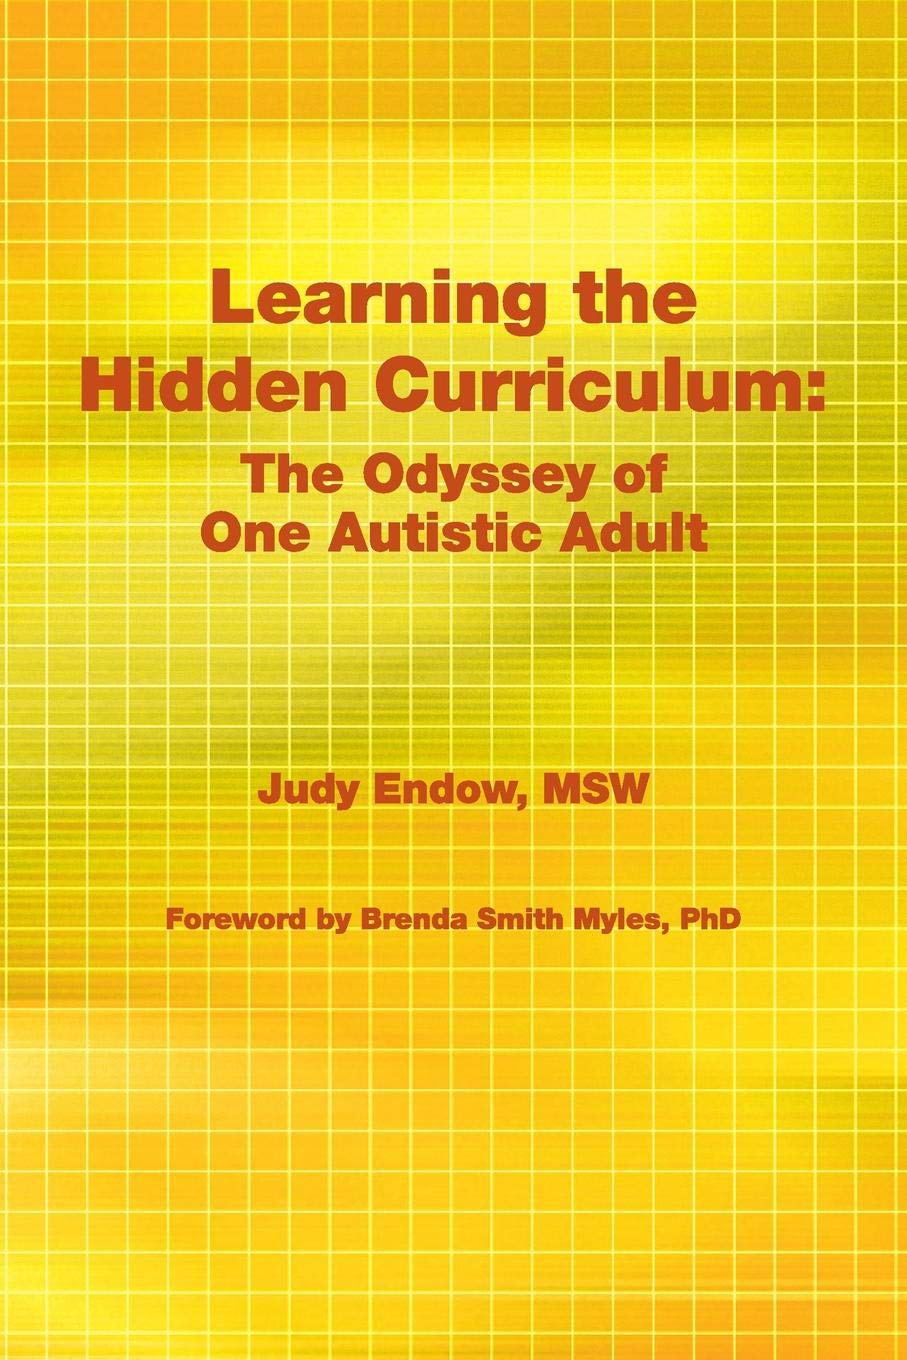 Download Learning the Hidden Curriculum: The Odyssey of One Autistic Adult ebook